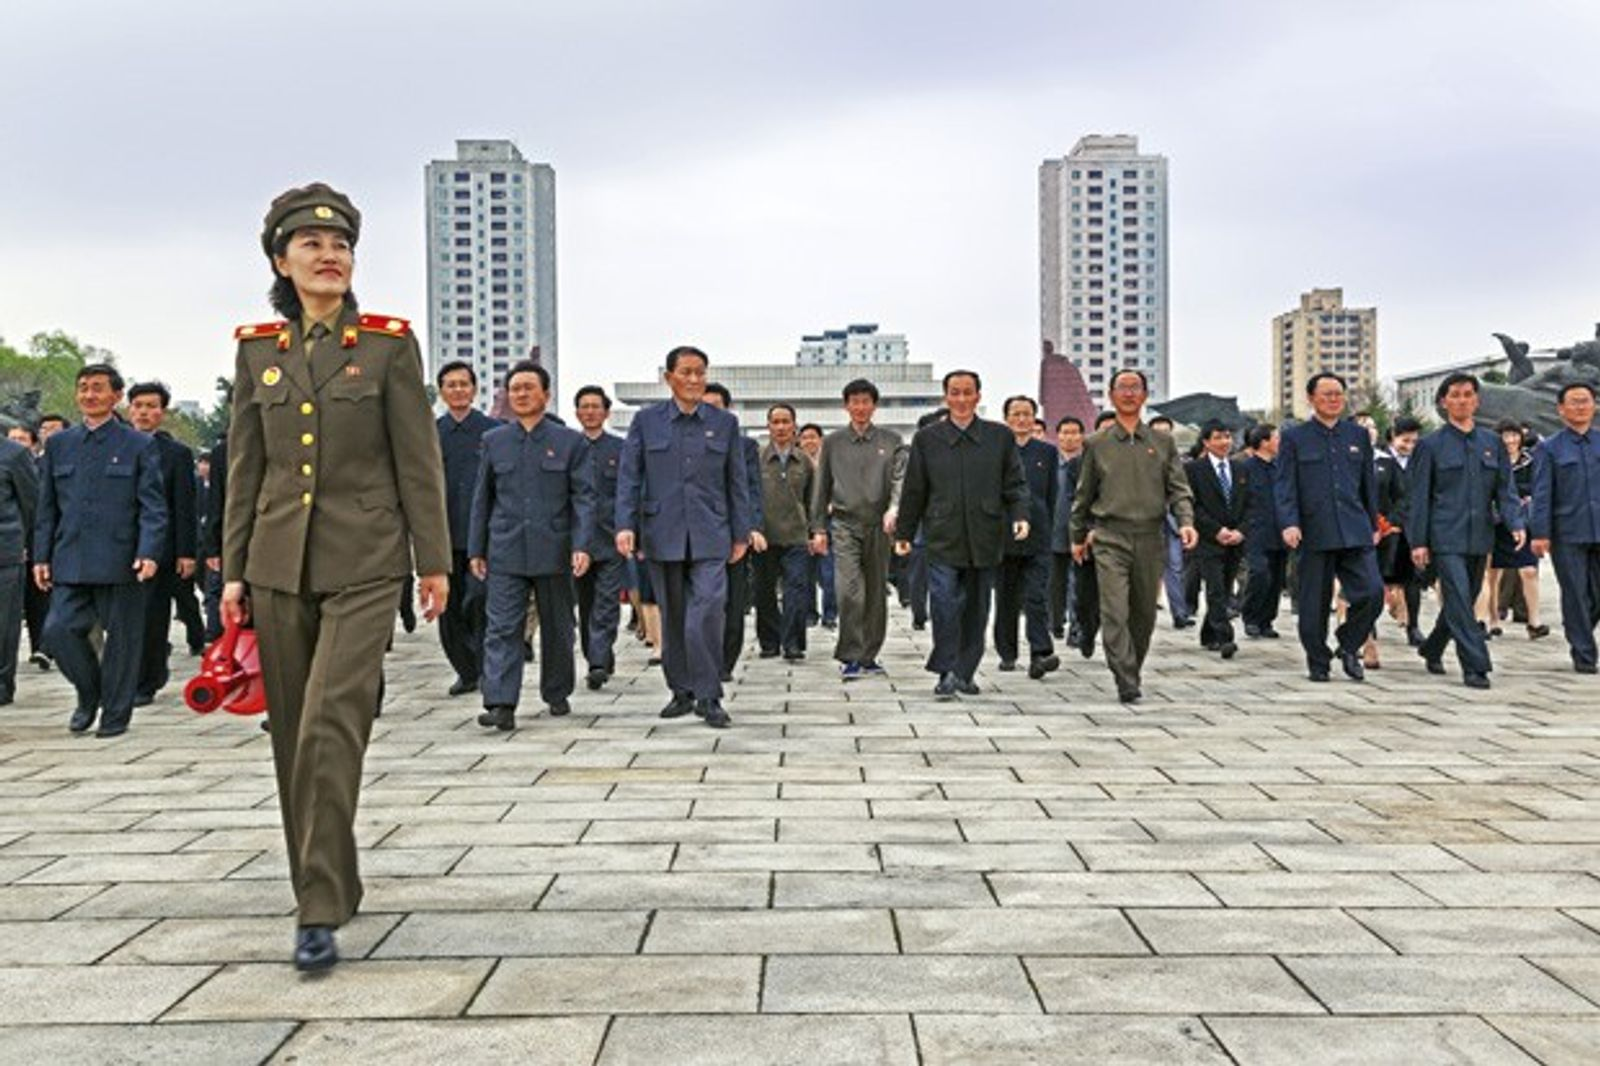 North Korea: Behind the veil